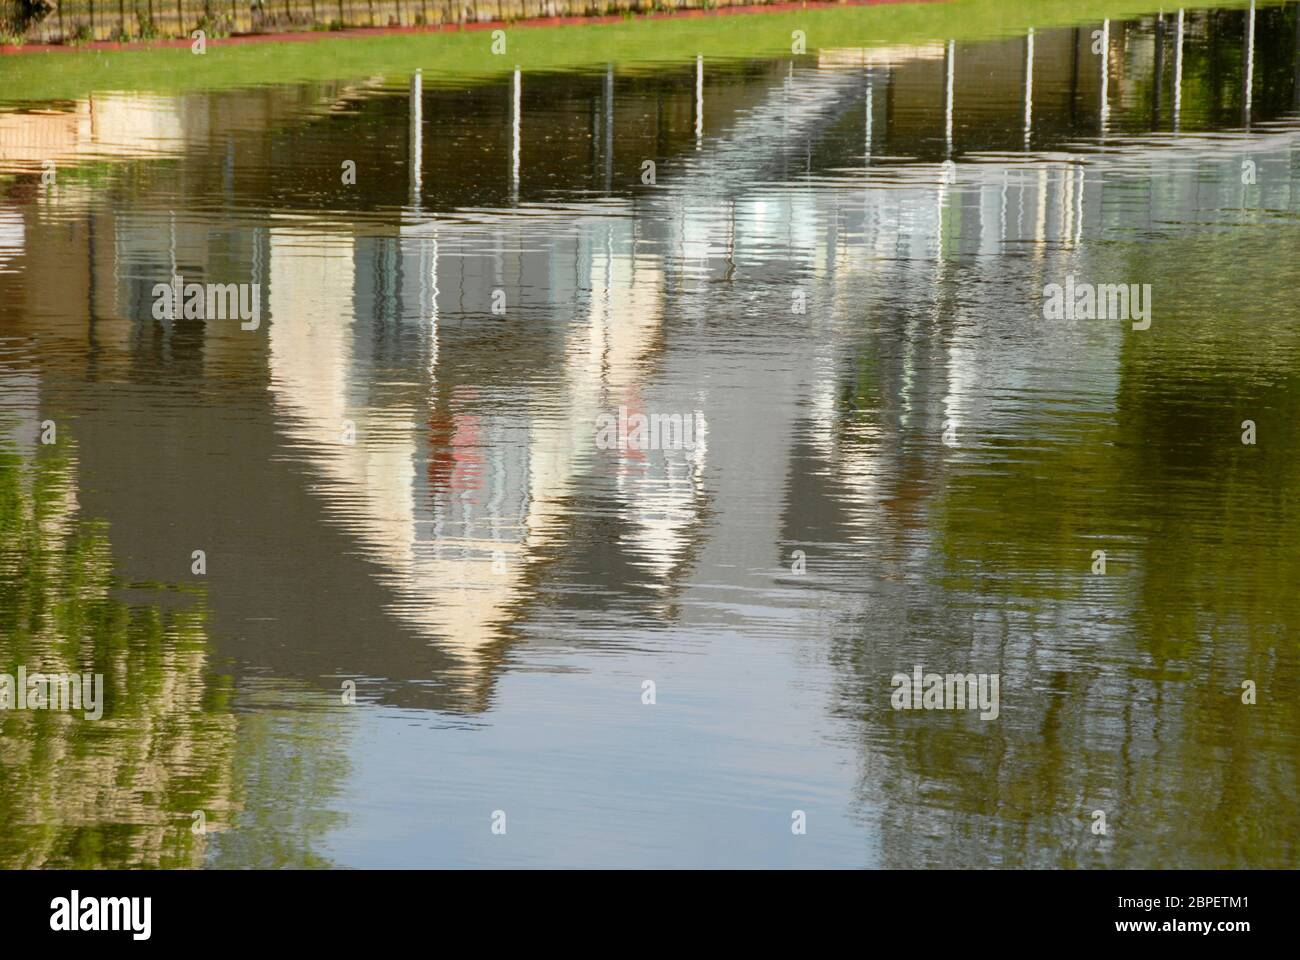 Abstract from soft relection of attractive riverside house in the water of the river Thames, England Stock Photo